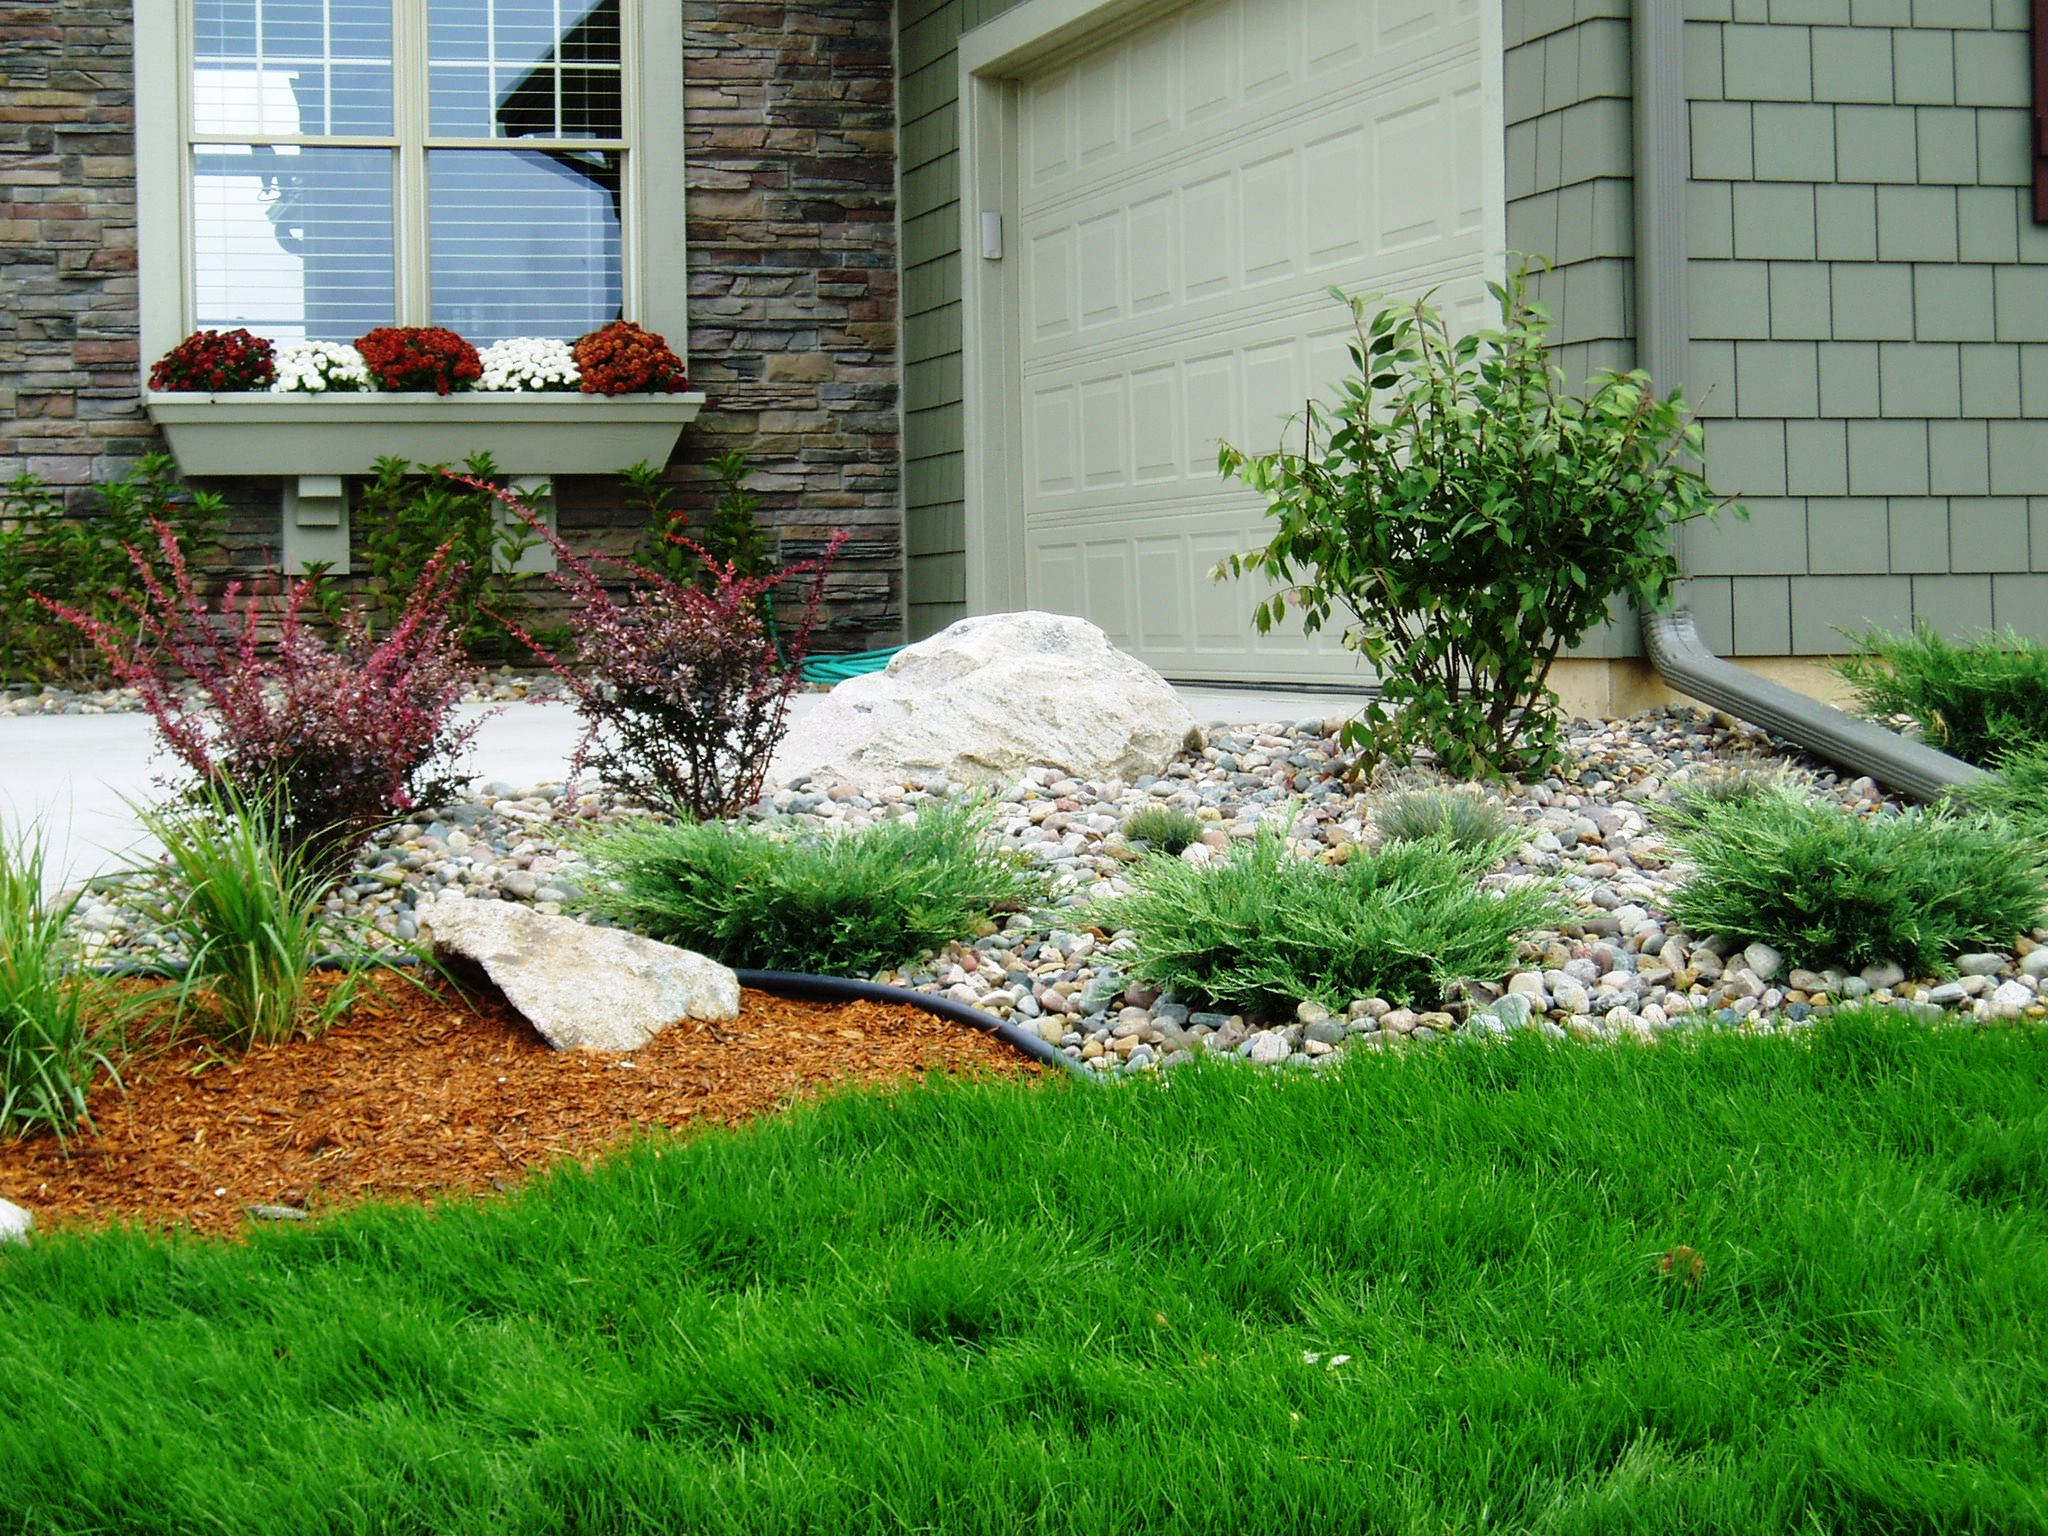 blaeser landscape design and construction